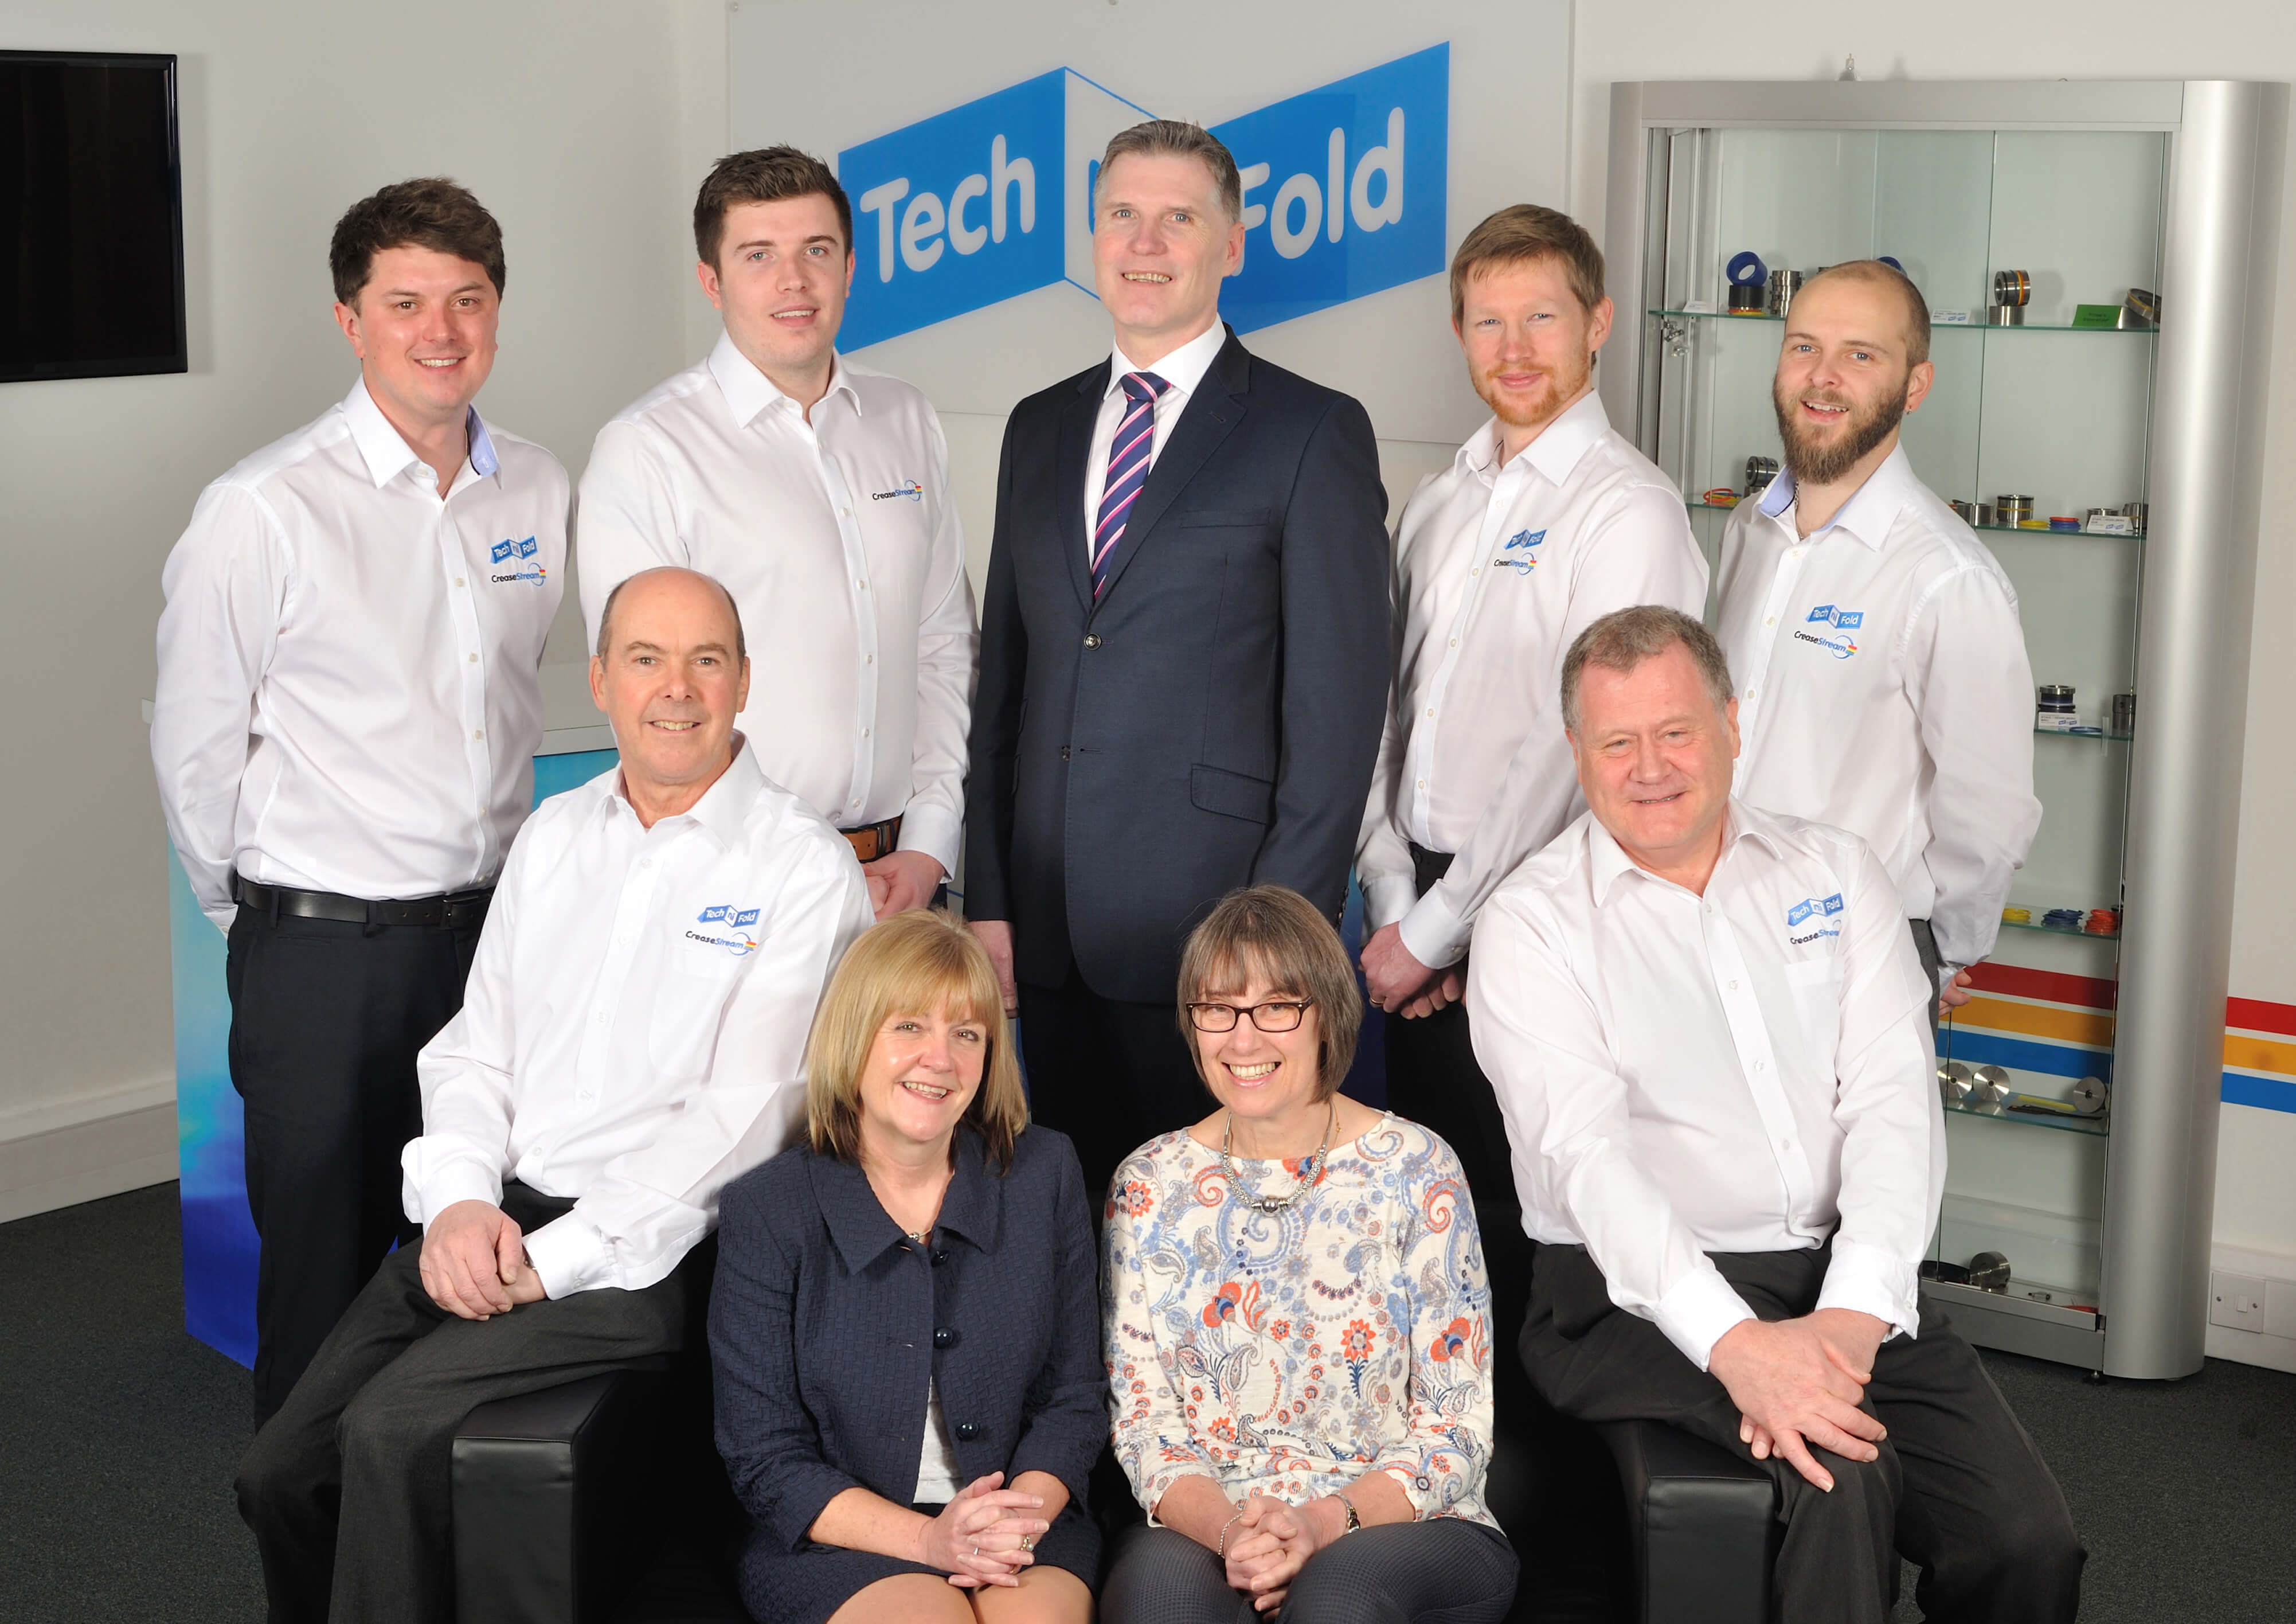 Tech-ni-Fold team